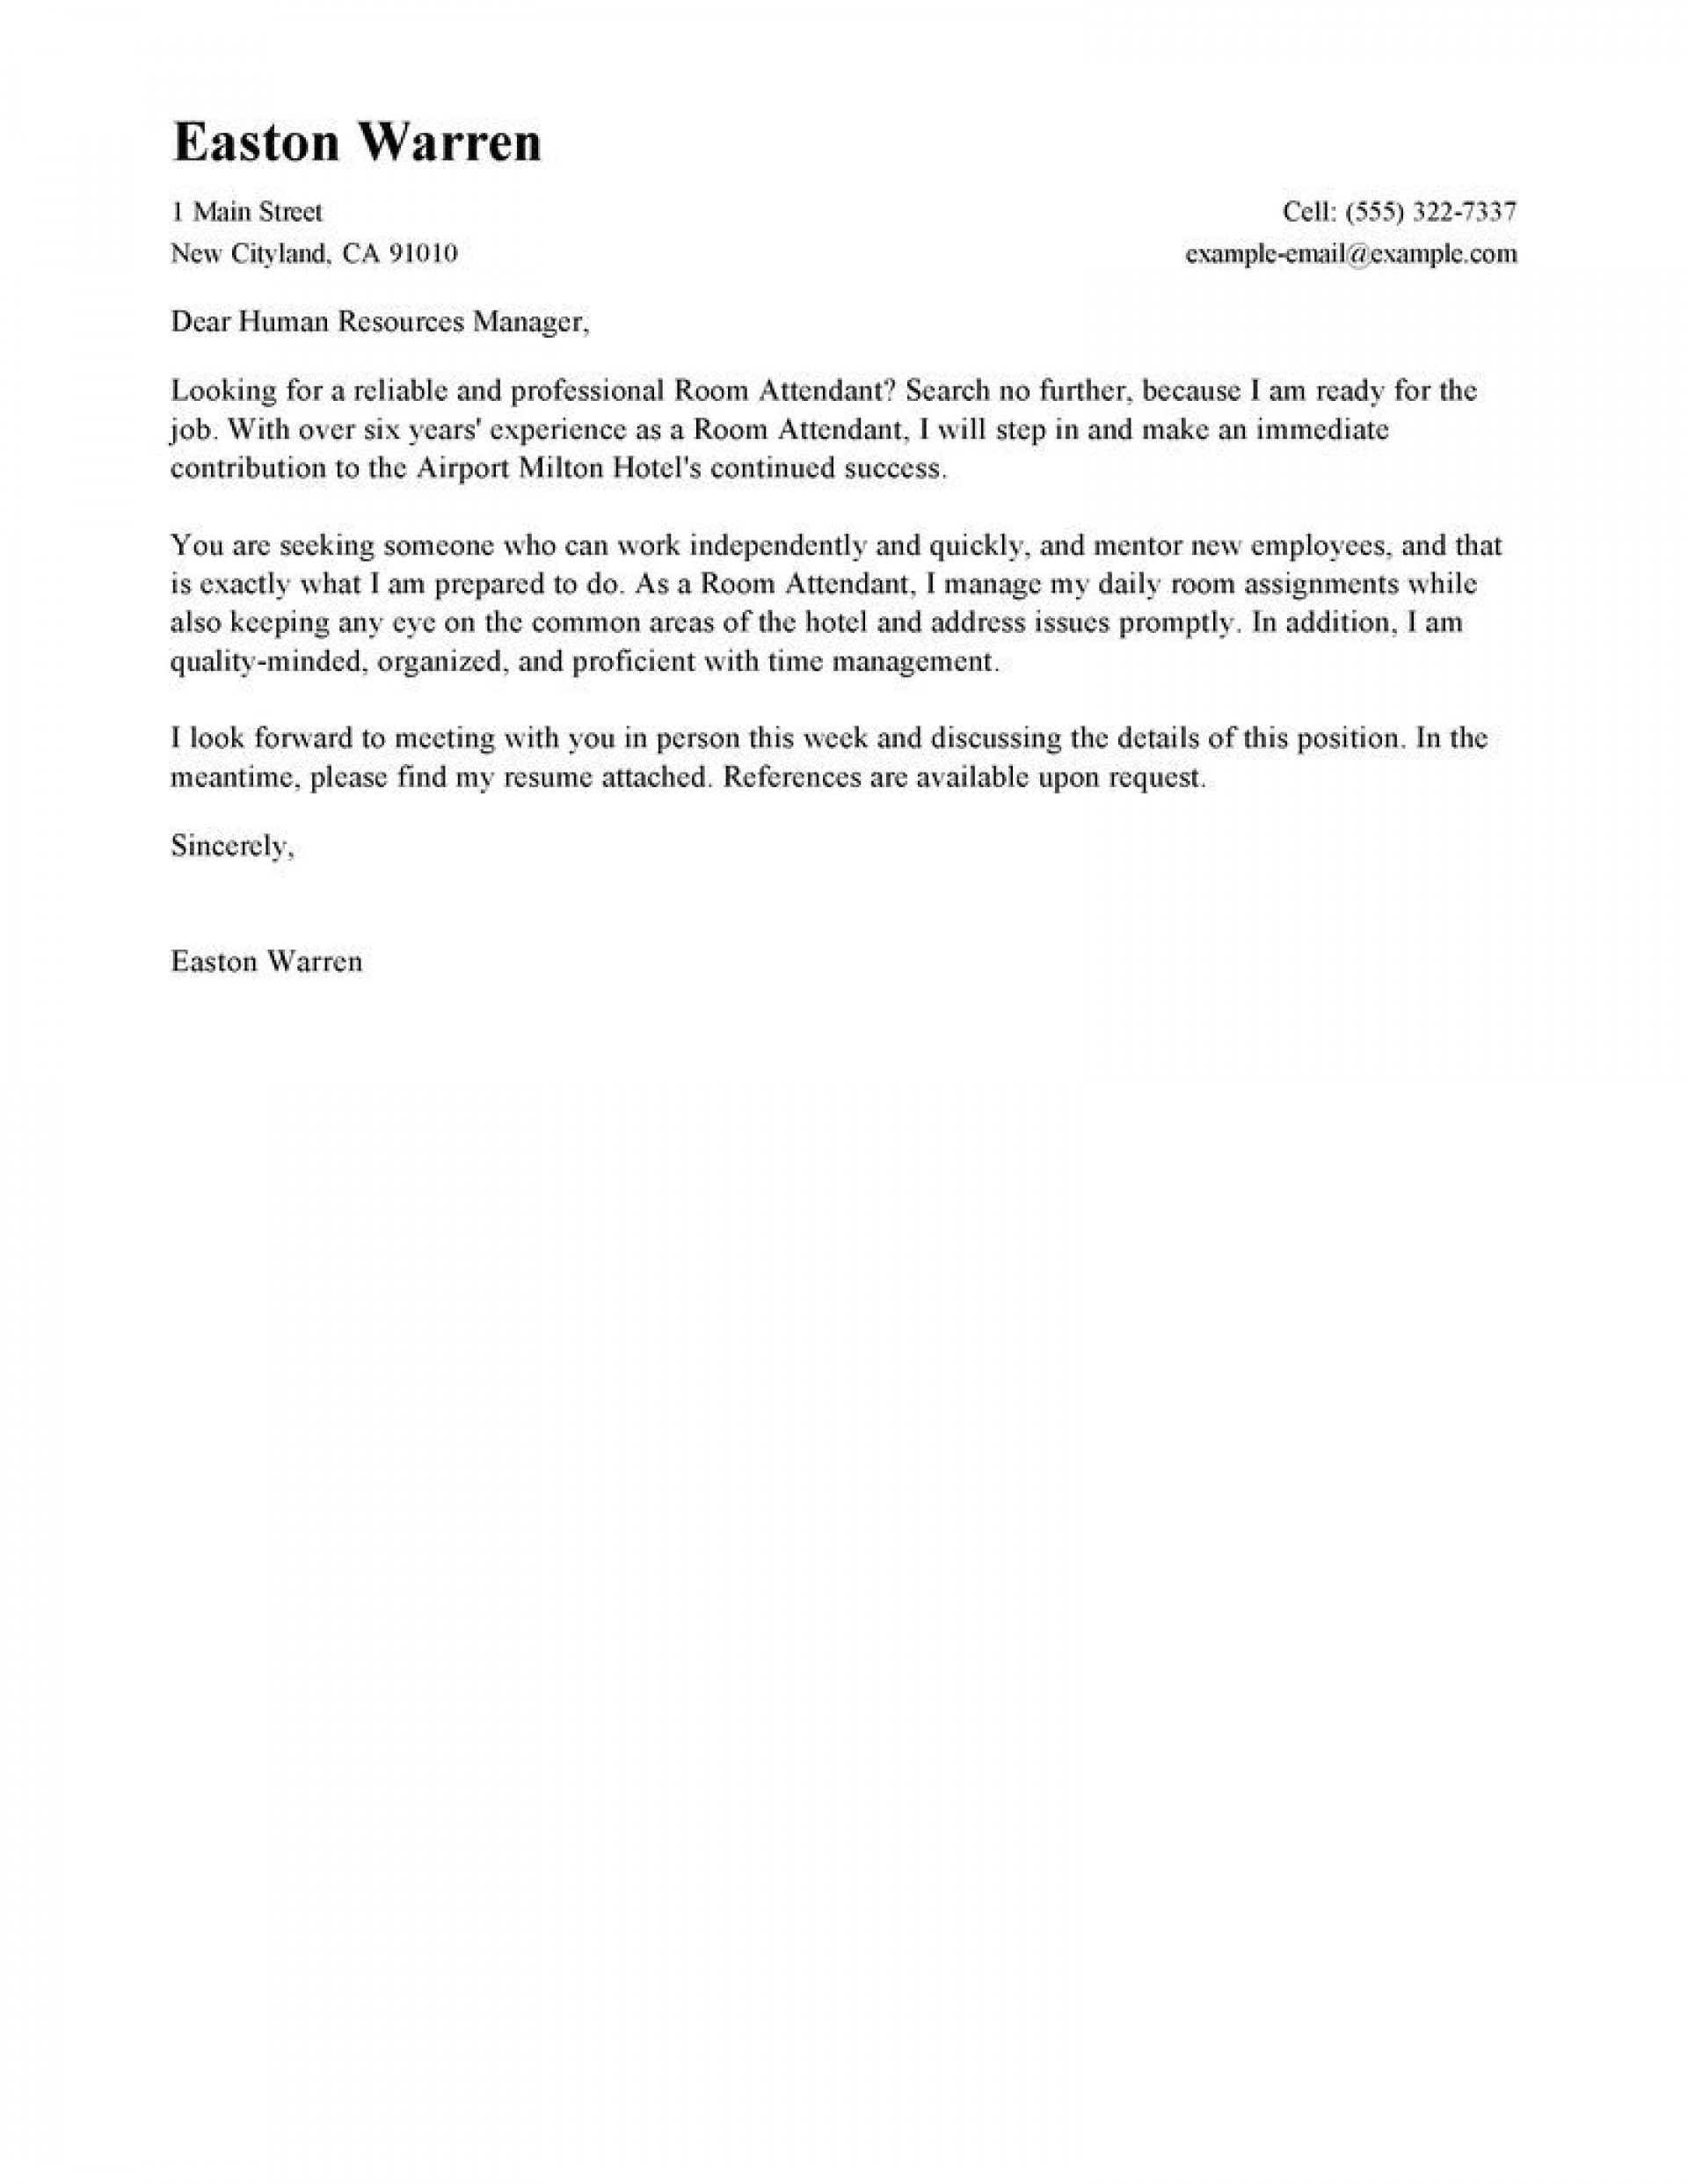 007 Incredible Short Cover Letter Template Highest Clarity  Uk Story1920